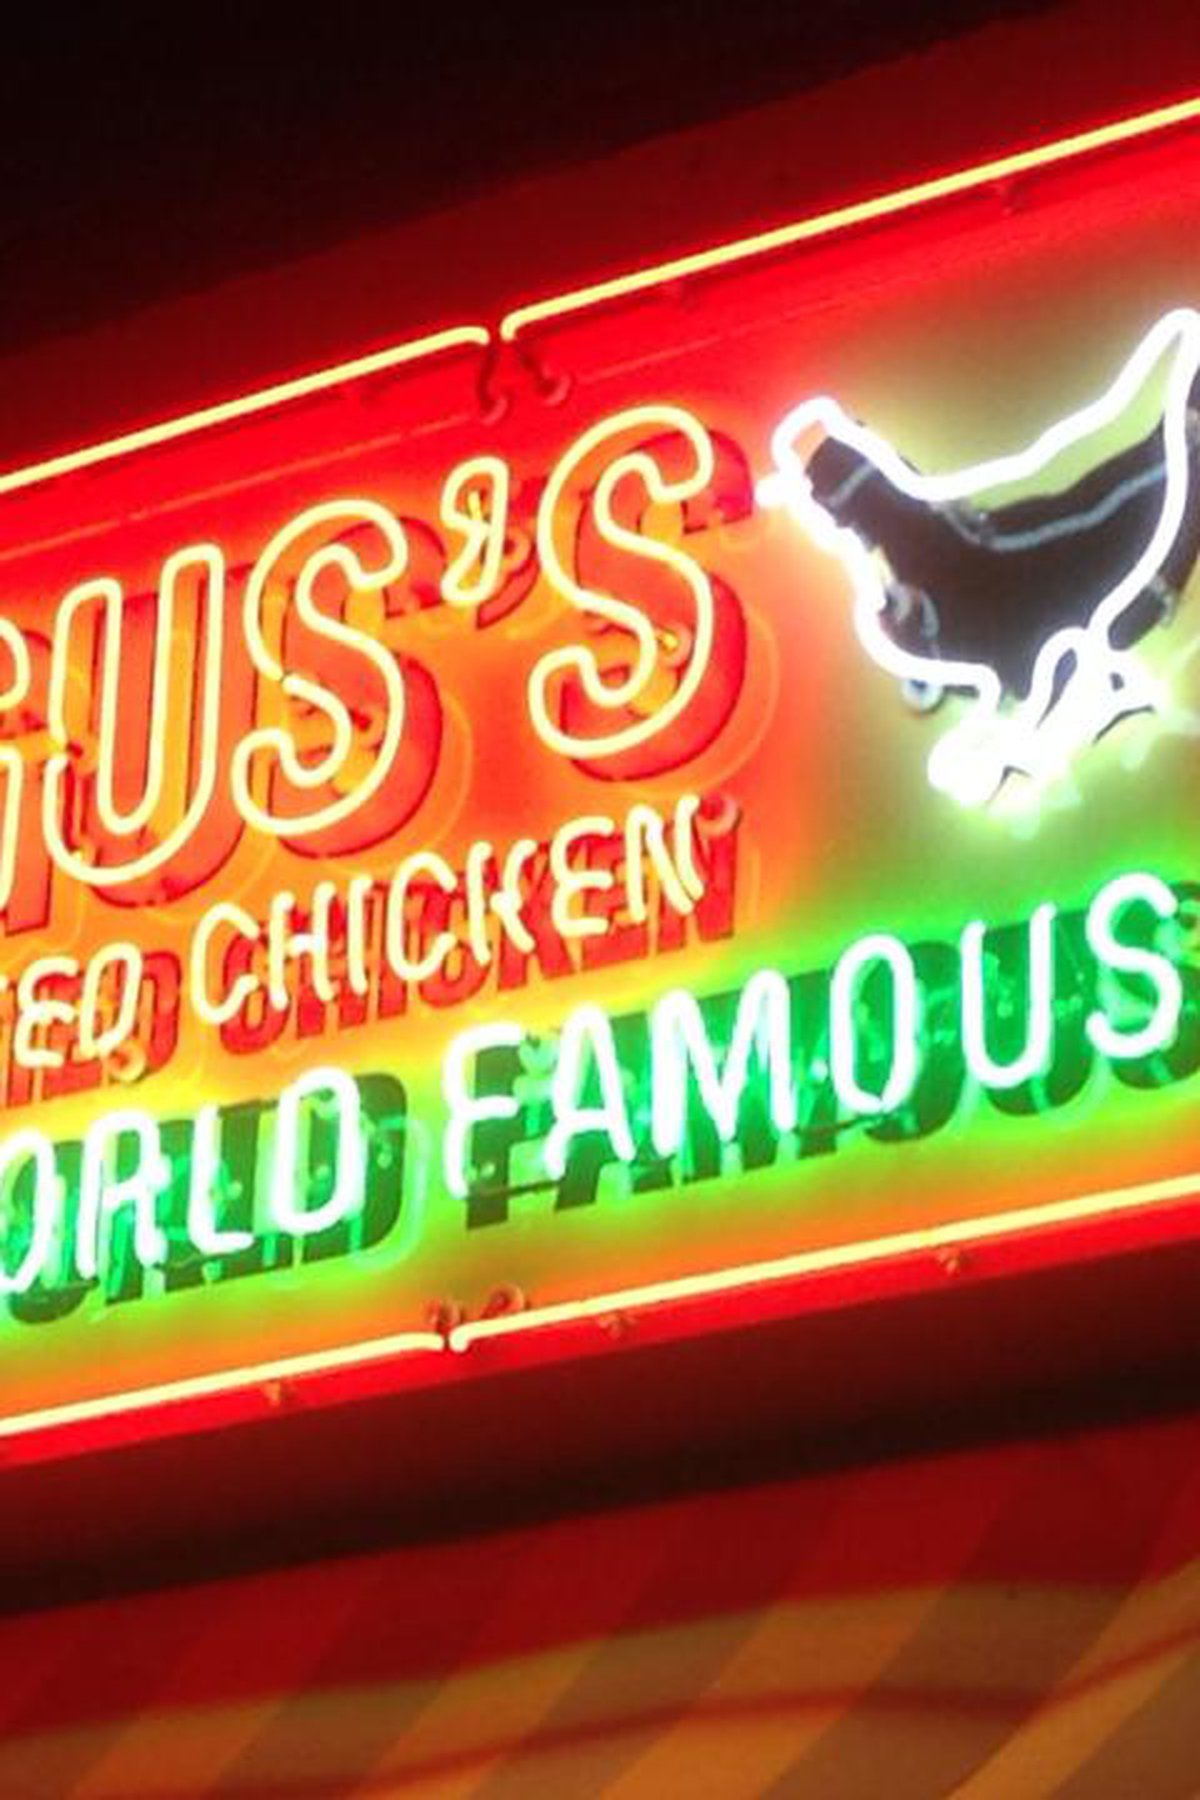 GQ writer pens love letter to Gus's Fried Chicken